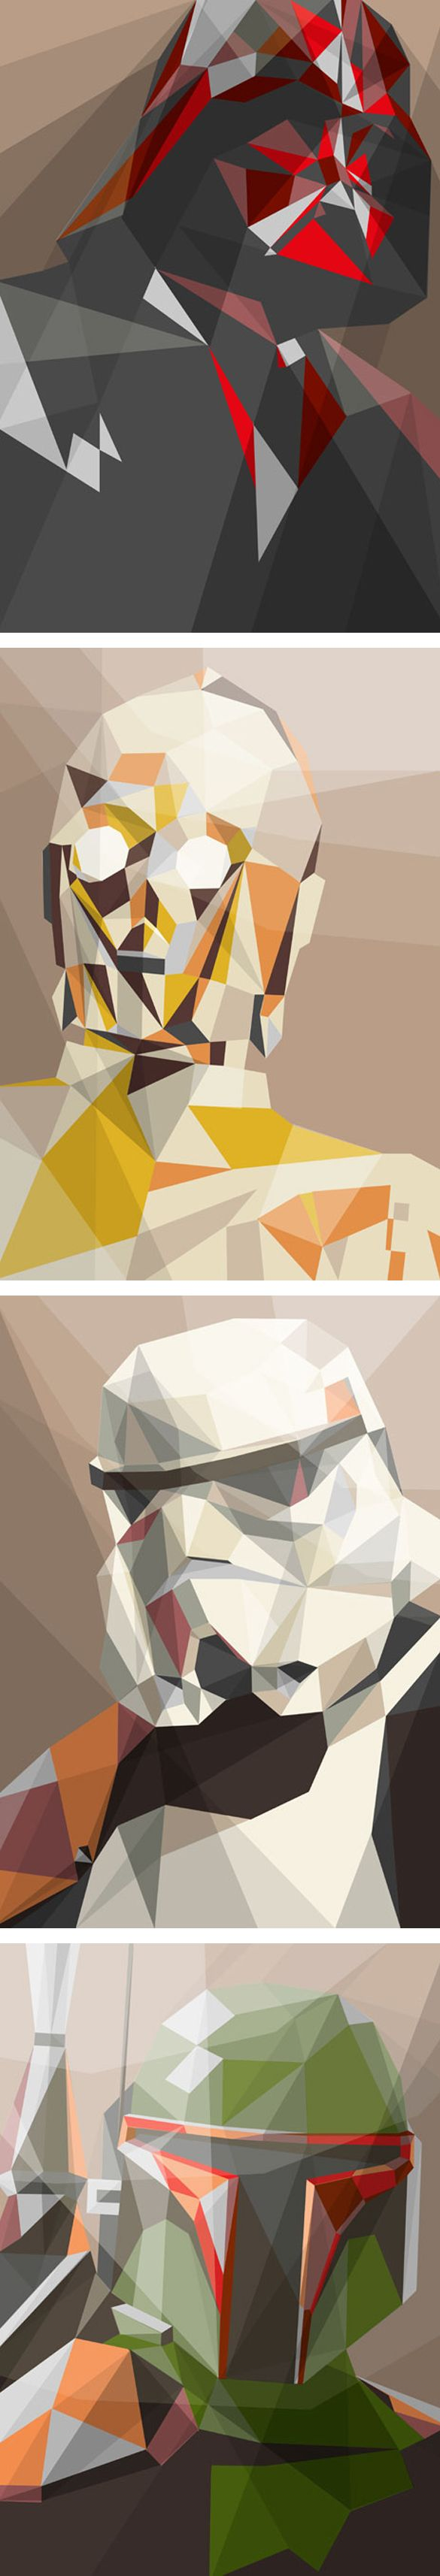 niceLiam Brazier, Star Wars Illustration Prints, Illustration Star Wars, Polygonal Art, Starwars Painting, Polygon Art, Illustration Geek, Starwars Artwork, Awesome Illustration